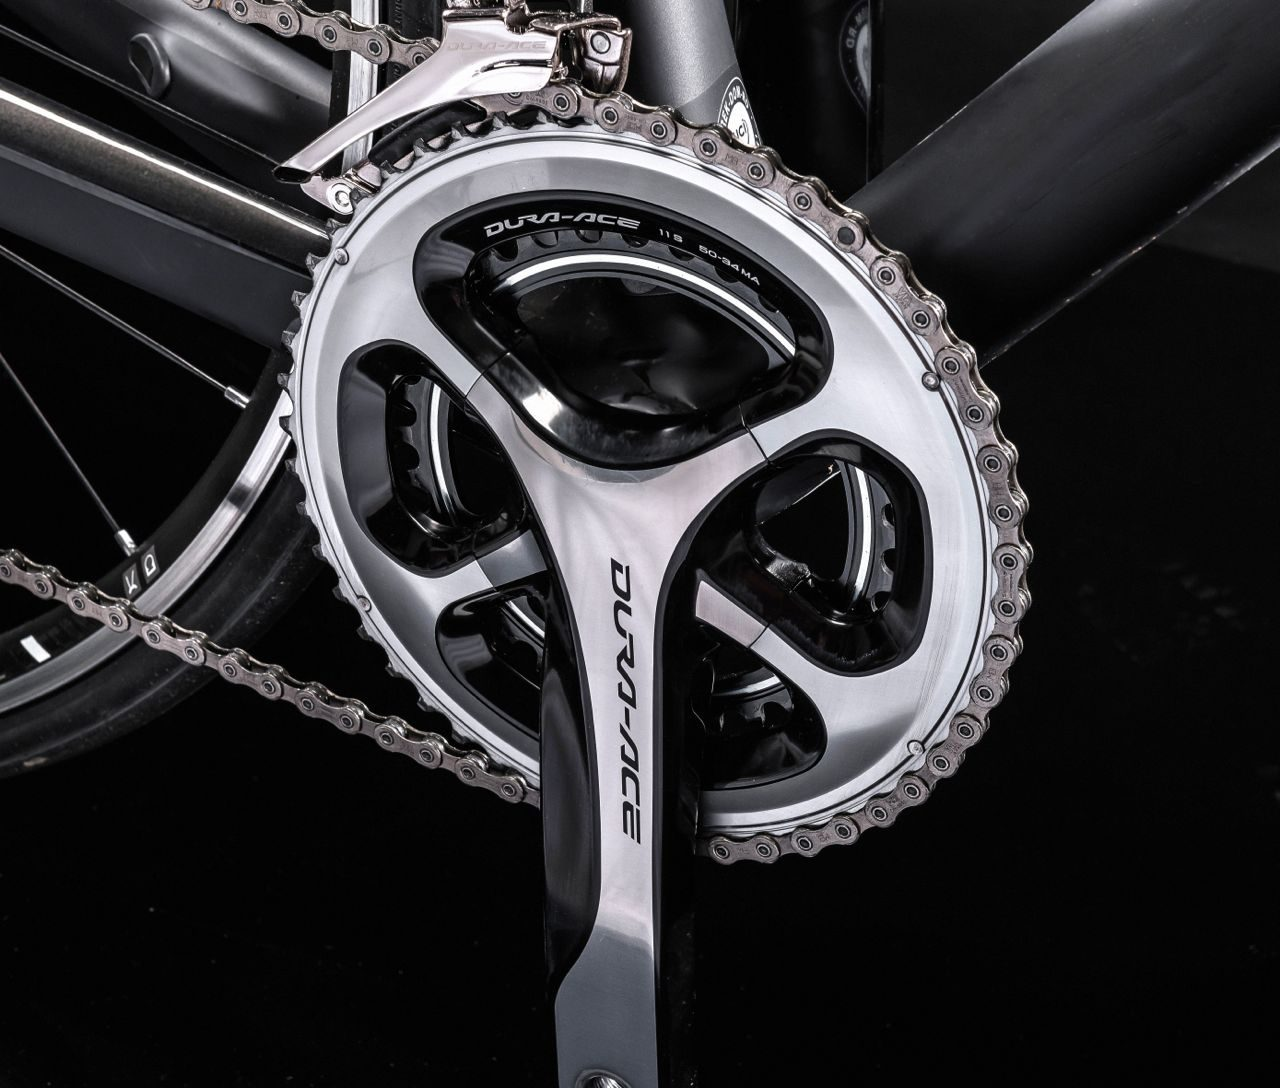 Shimano Dura-Ace 9000 crankset on Trek Domane 5.9